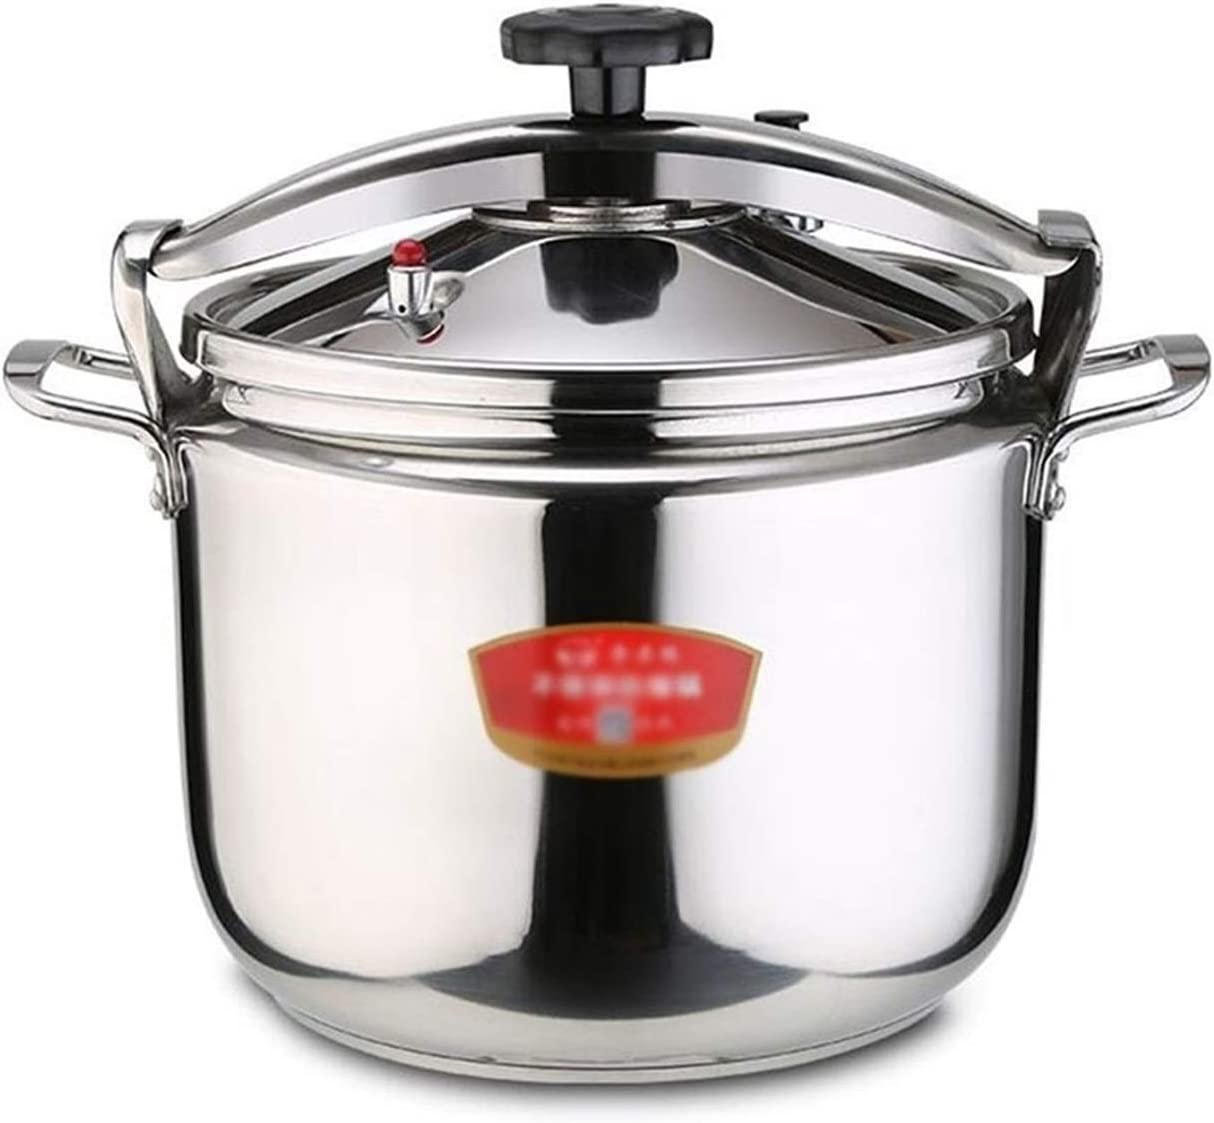 Commercial explosion-proof pressure cooker 304 stainless steel large capacity super thick pressure cooker induction cooker hotel gas general induction cooker 15L-50L (Color : Silver, Size : 22L)